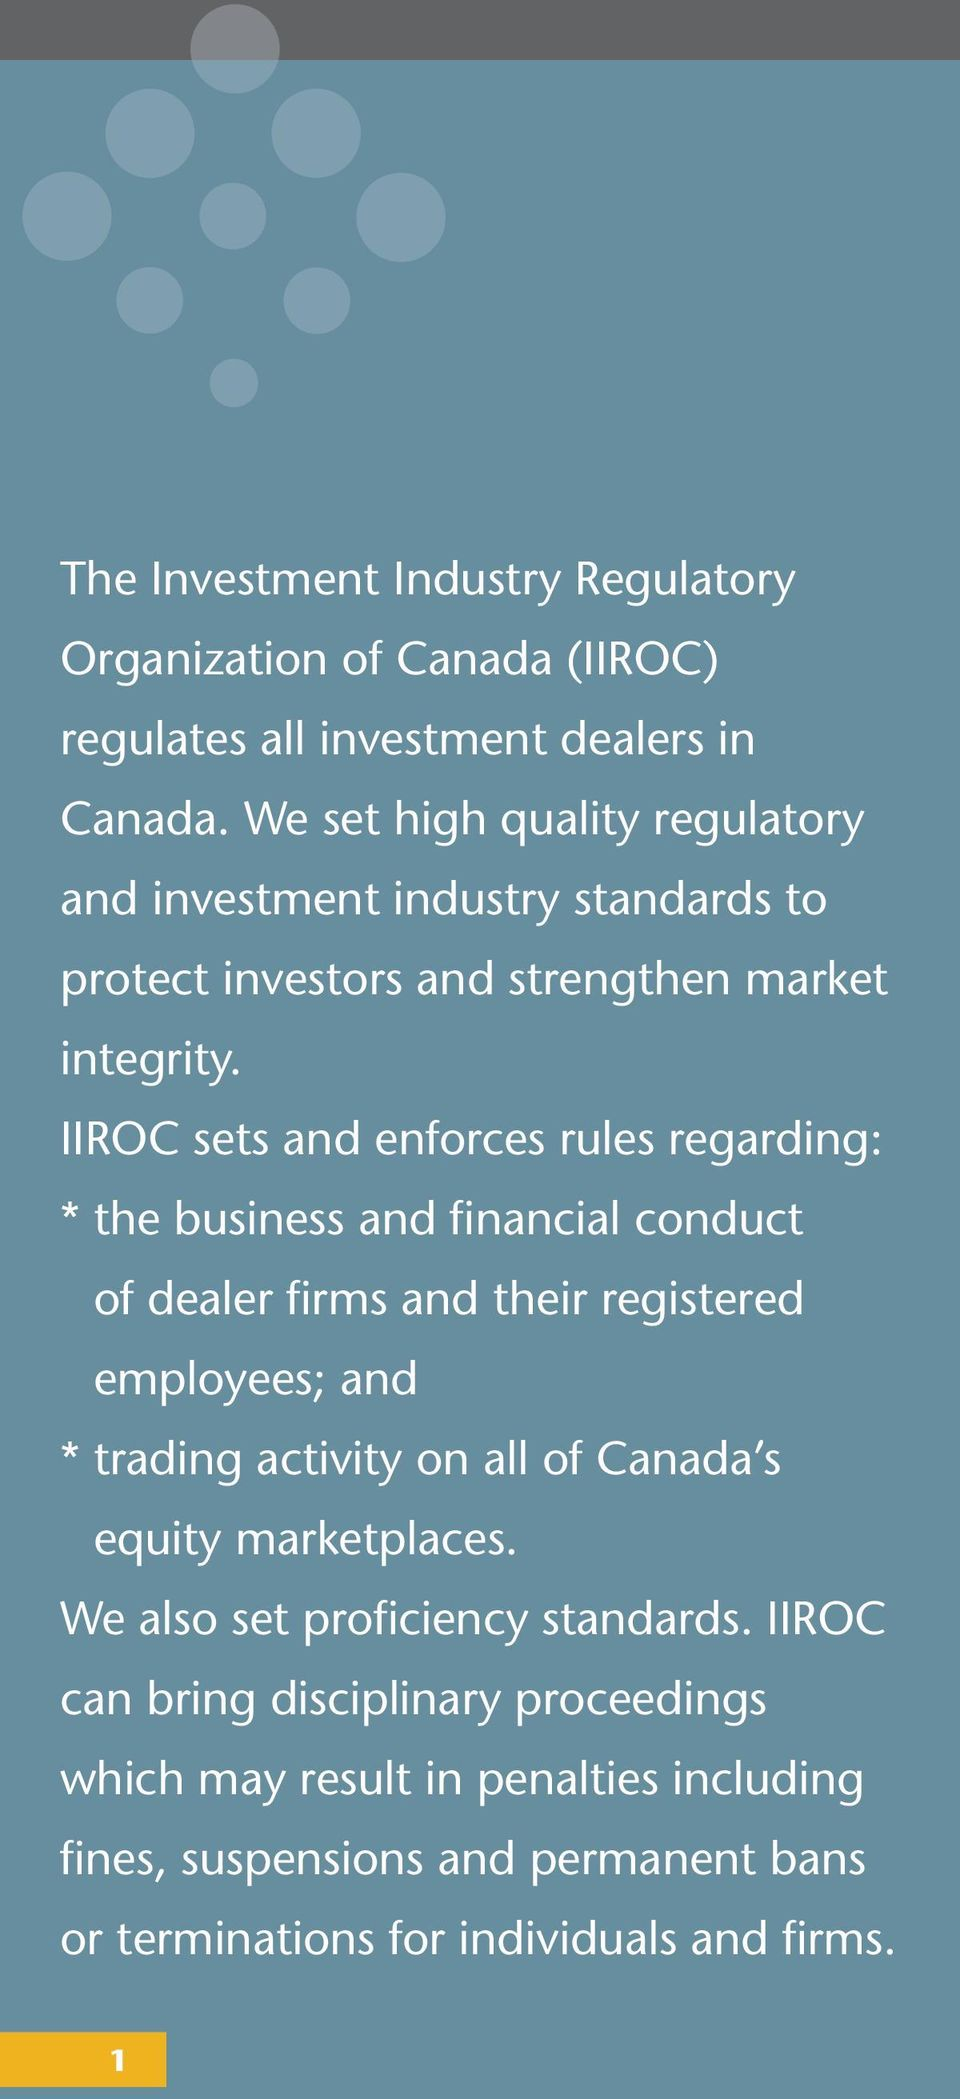 IIROC sets and enforces rules regarding: * the business and financial conduct of dealer firms and their registered employees; and * trading activity on